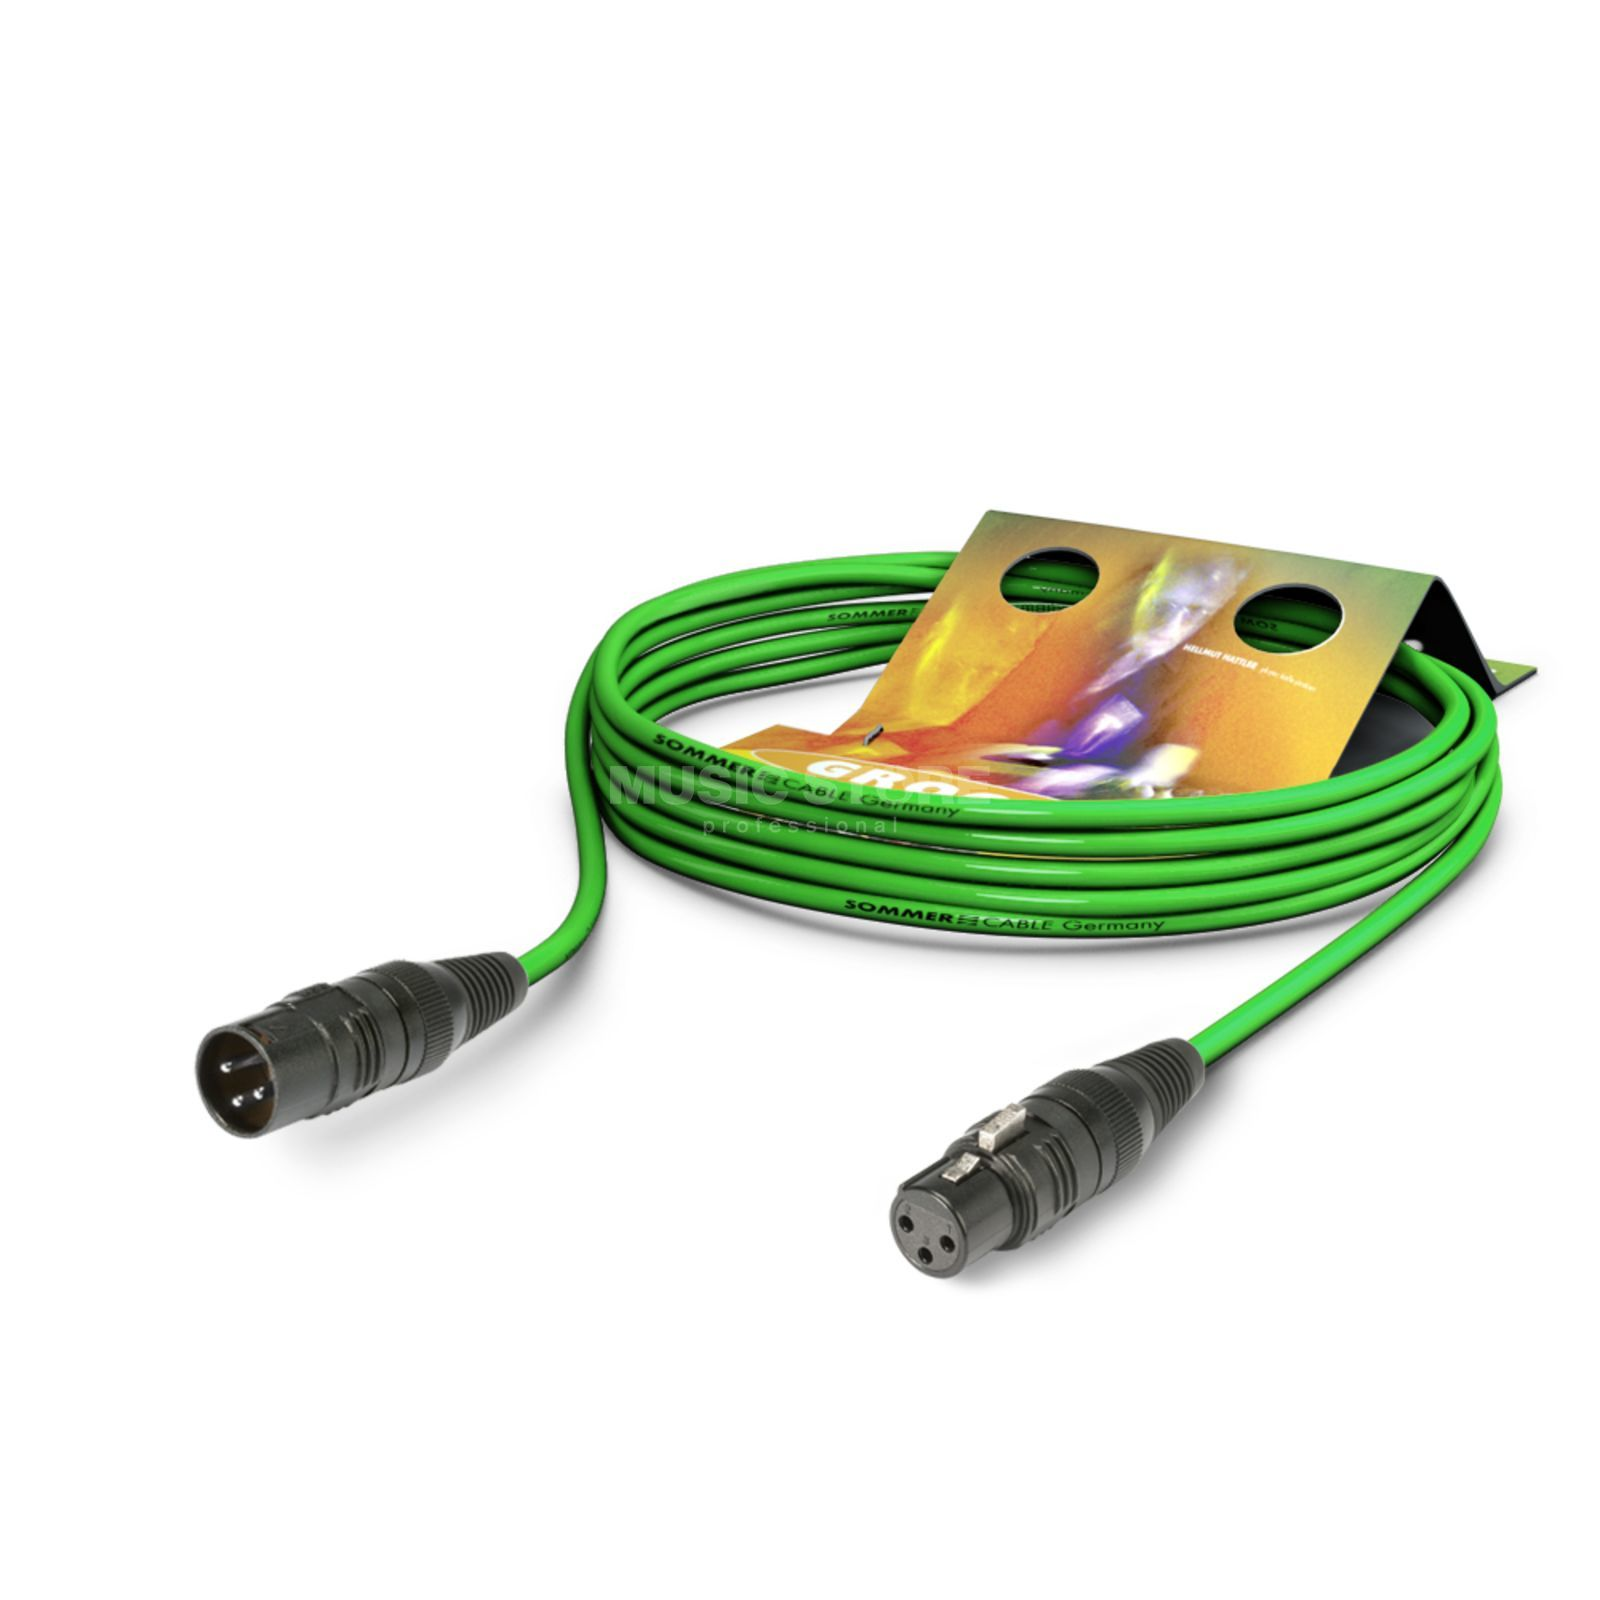 Sommer Cable SGCE-0100 GN Microphone Cable 1m green, HICON Produktbillede